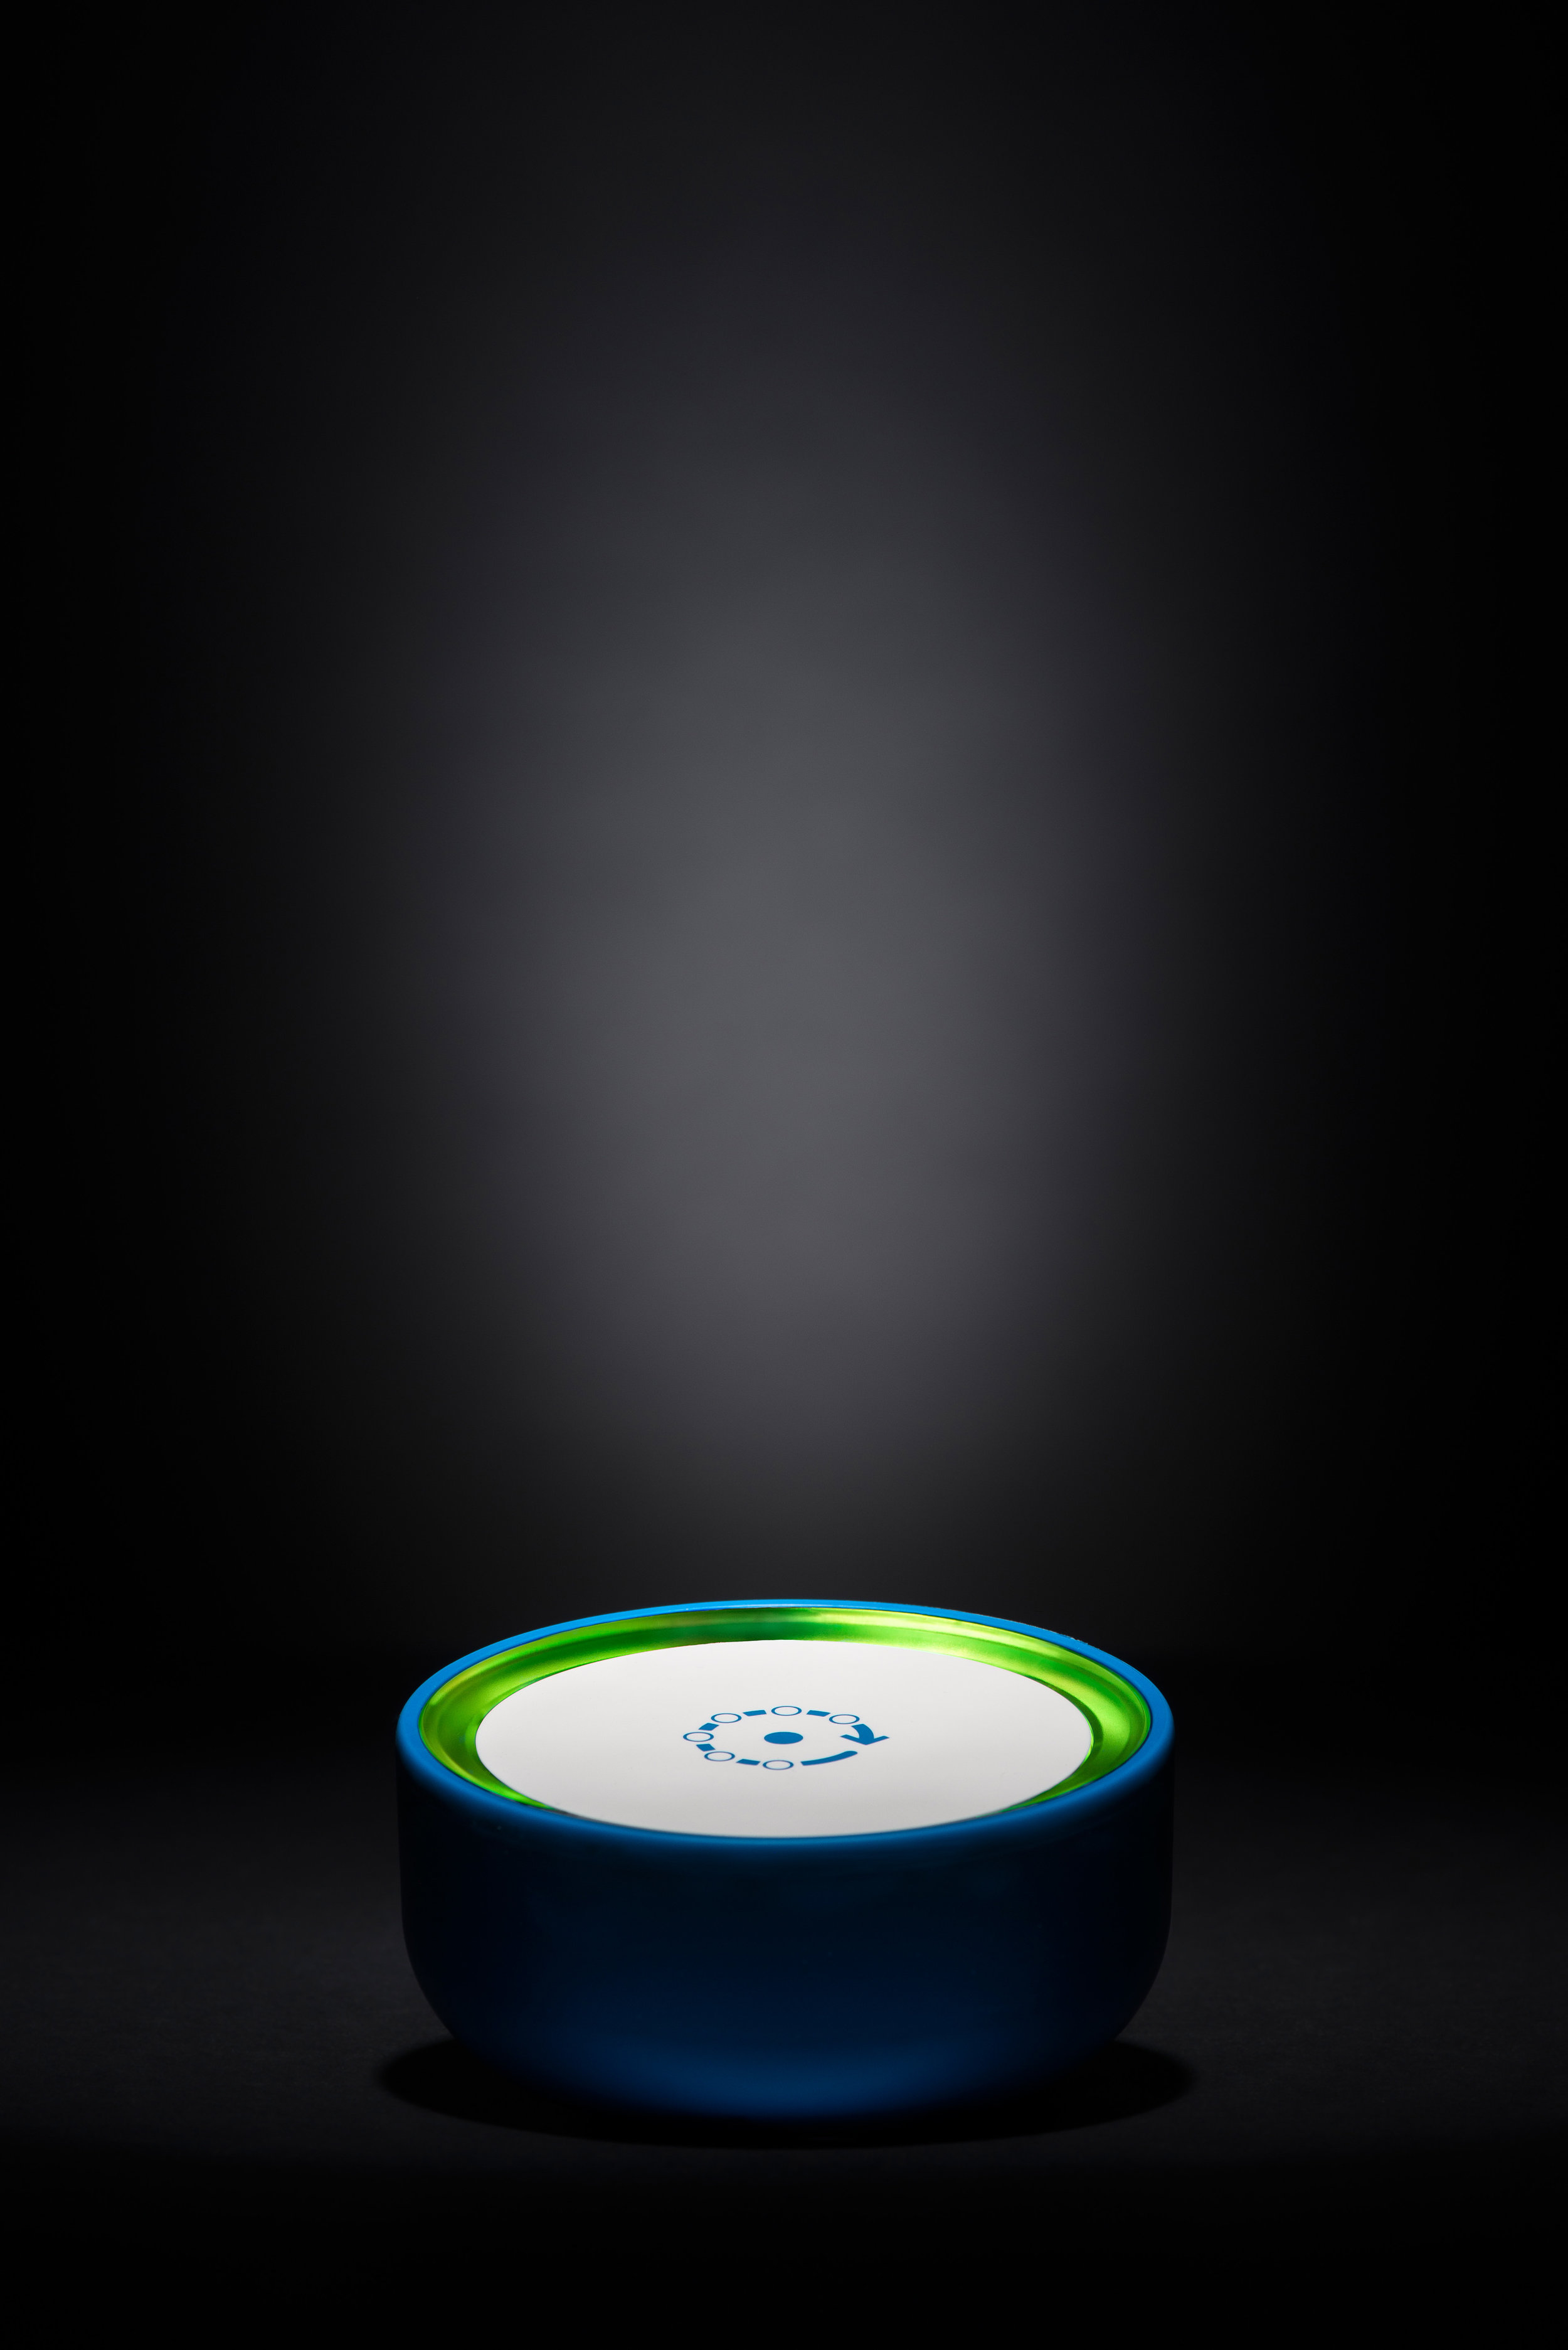 Still life photography of a product for Fing Box. Glowing lights in the darkness